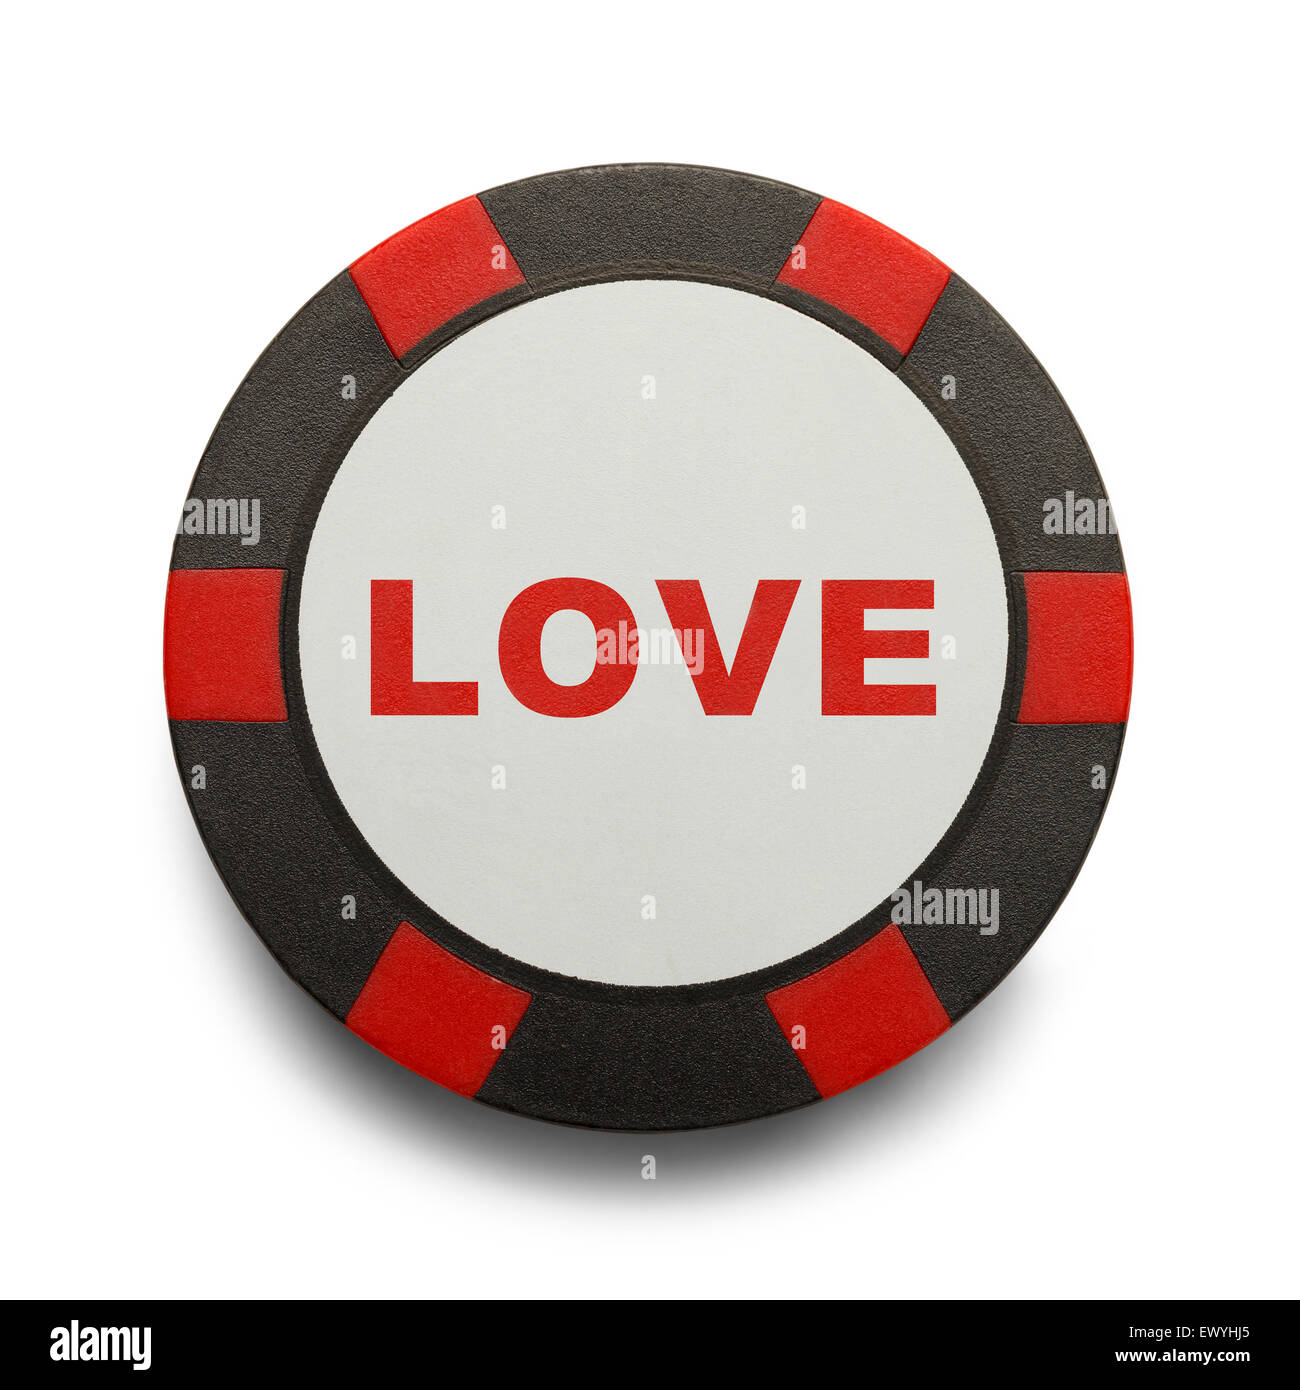 Love is a Gamble Casino Chip Isolated on White Background. - Stock Image